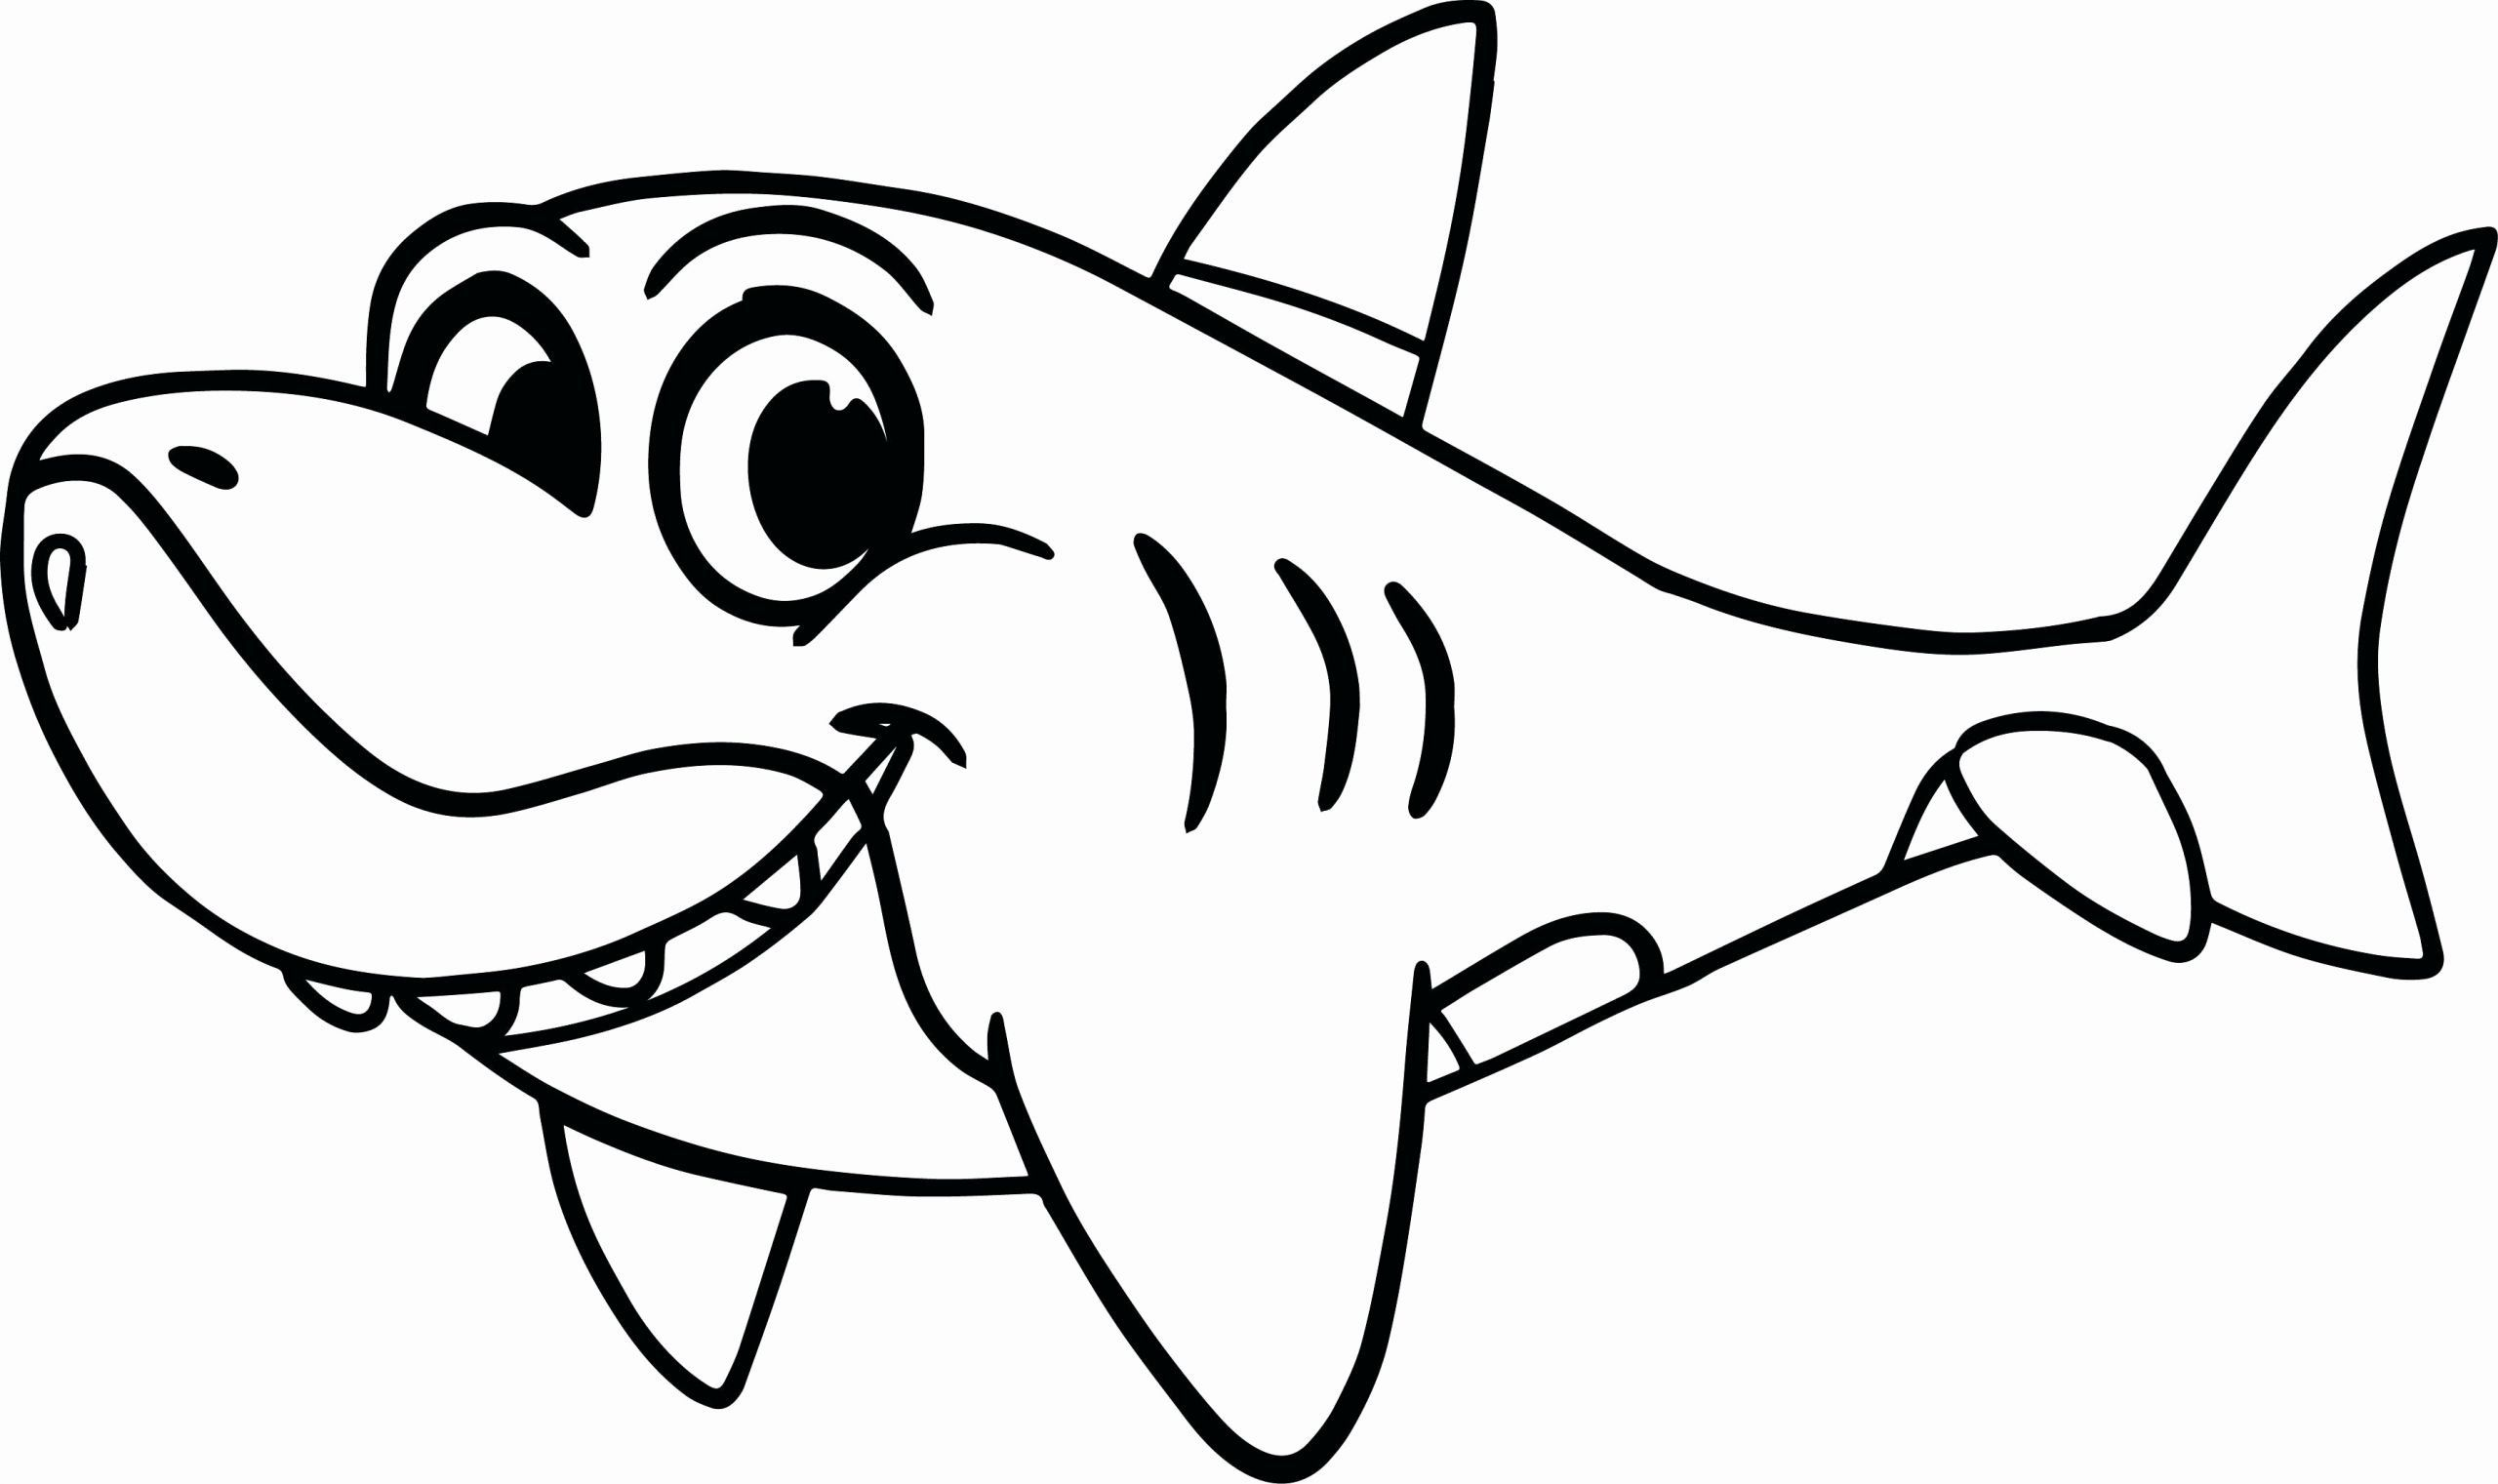 Great White Shark Coloring Page Luxury Great White Shark Coloring Pages To Print Shark Coloring Pages Cartoon Coloring Pages Cute Coloring Pages